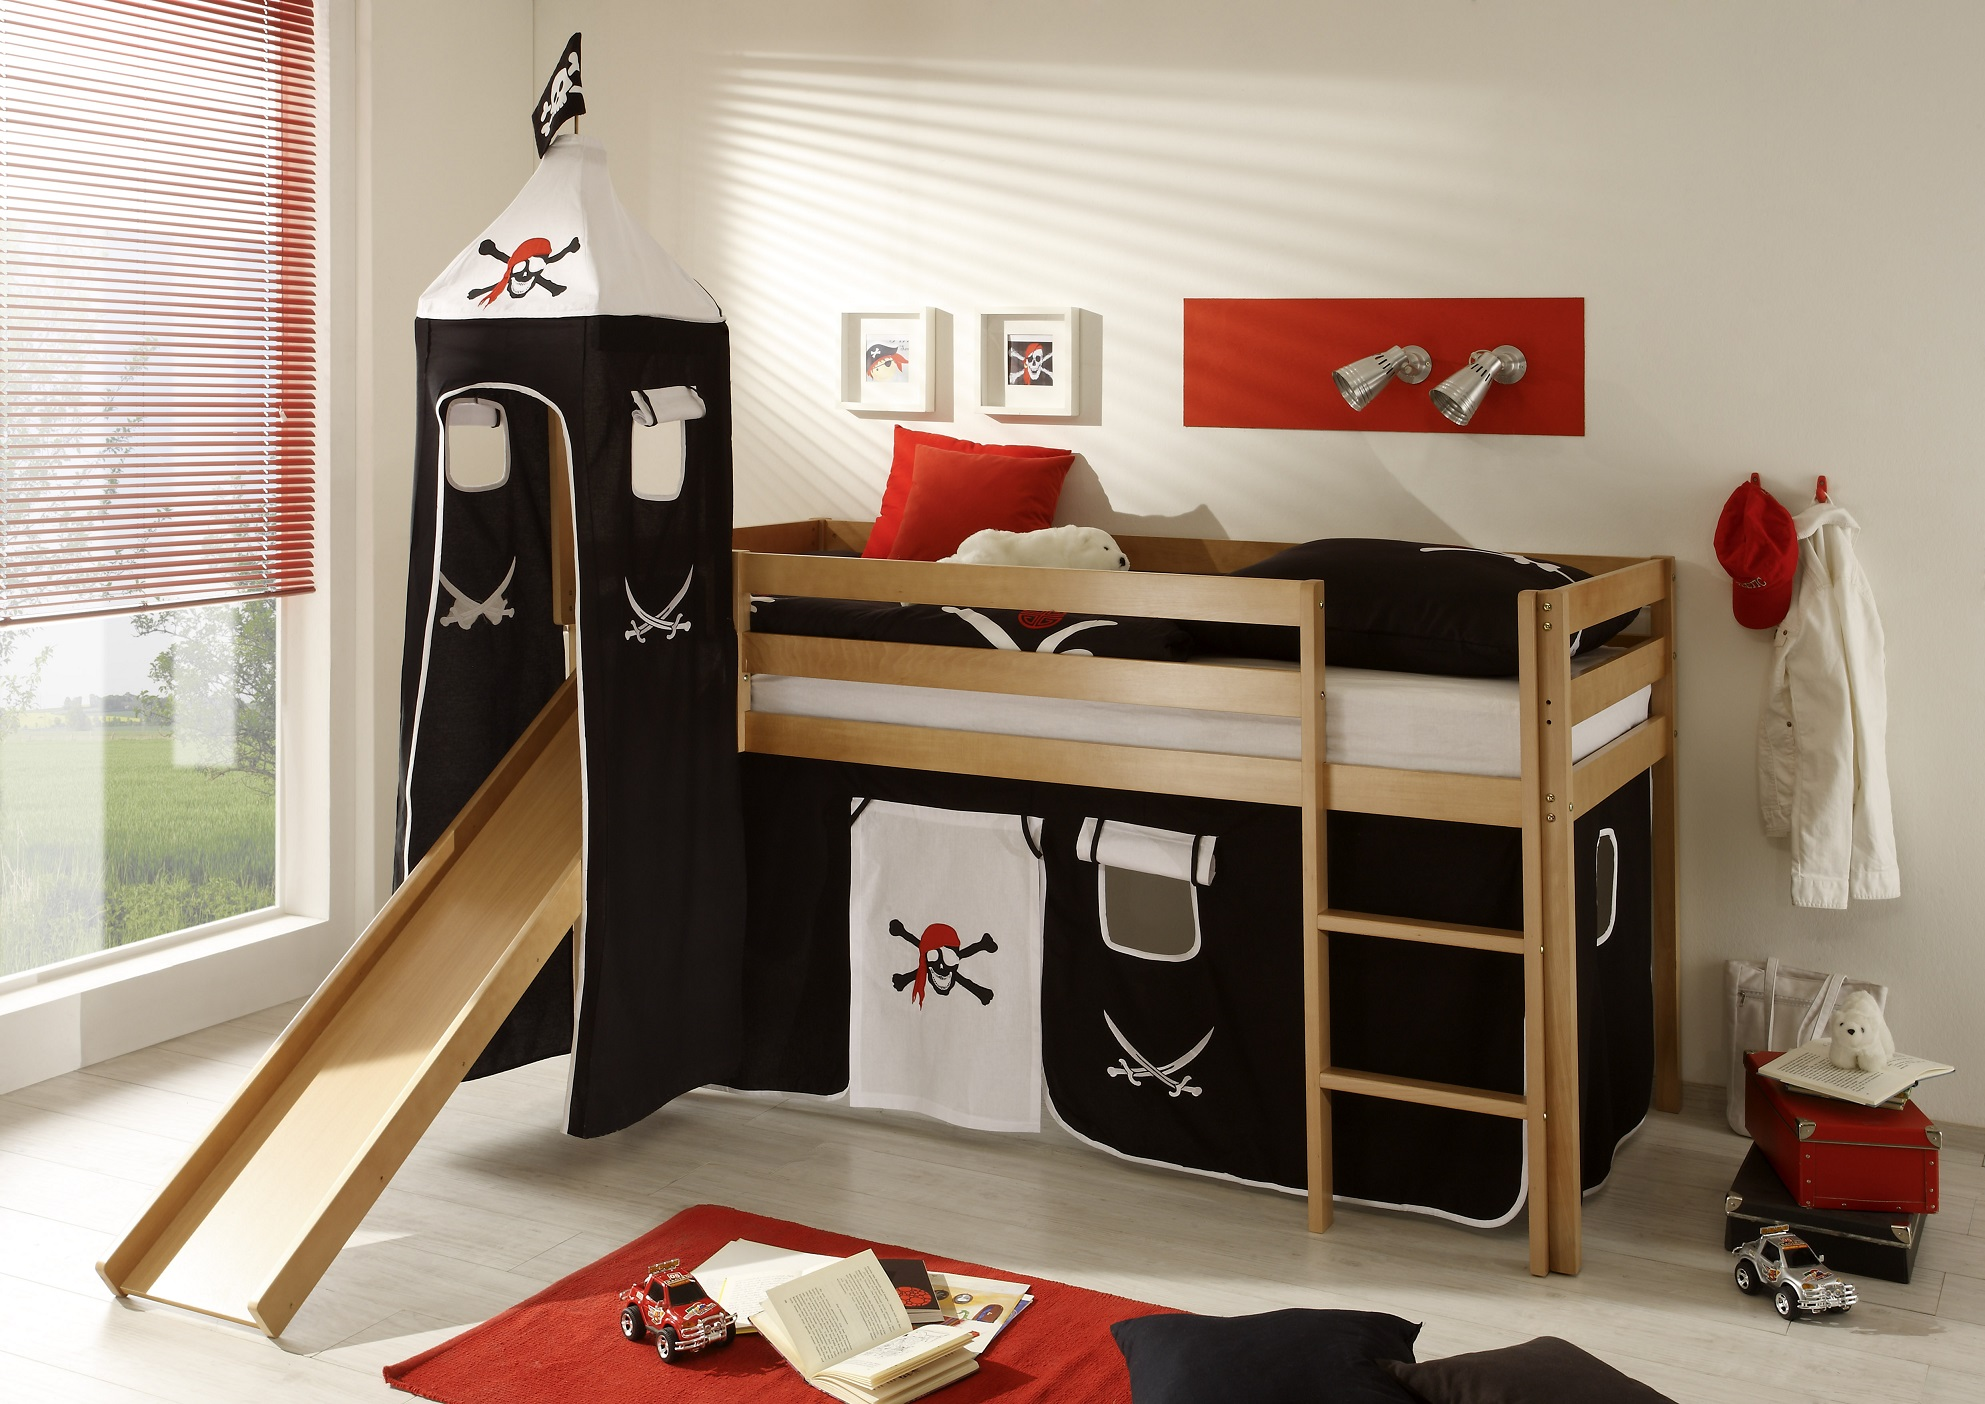 pirat hochbett mit turm rutsche weiss buche massvi. Black Bedroom Furniture Sets. Home Design Ideas